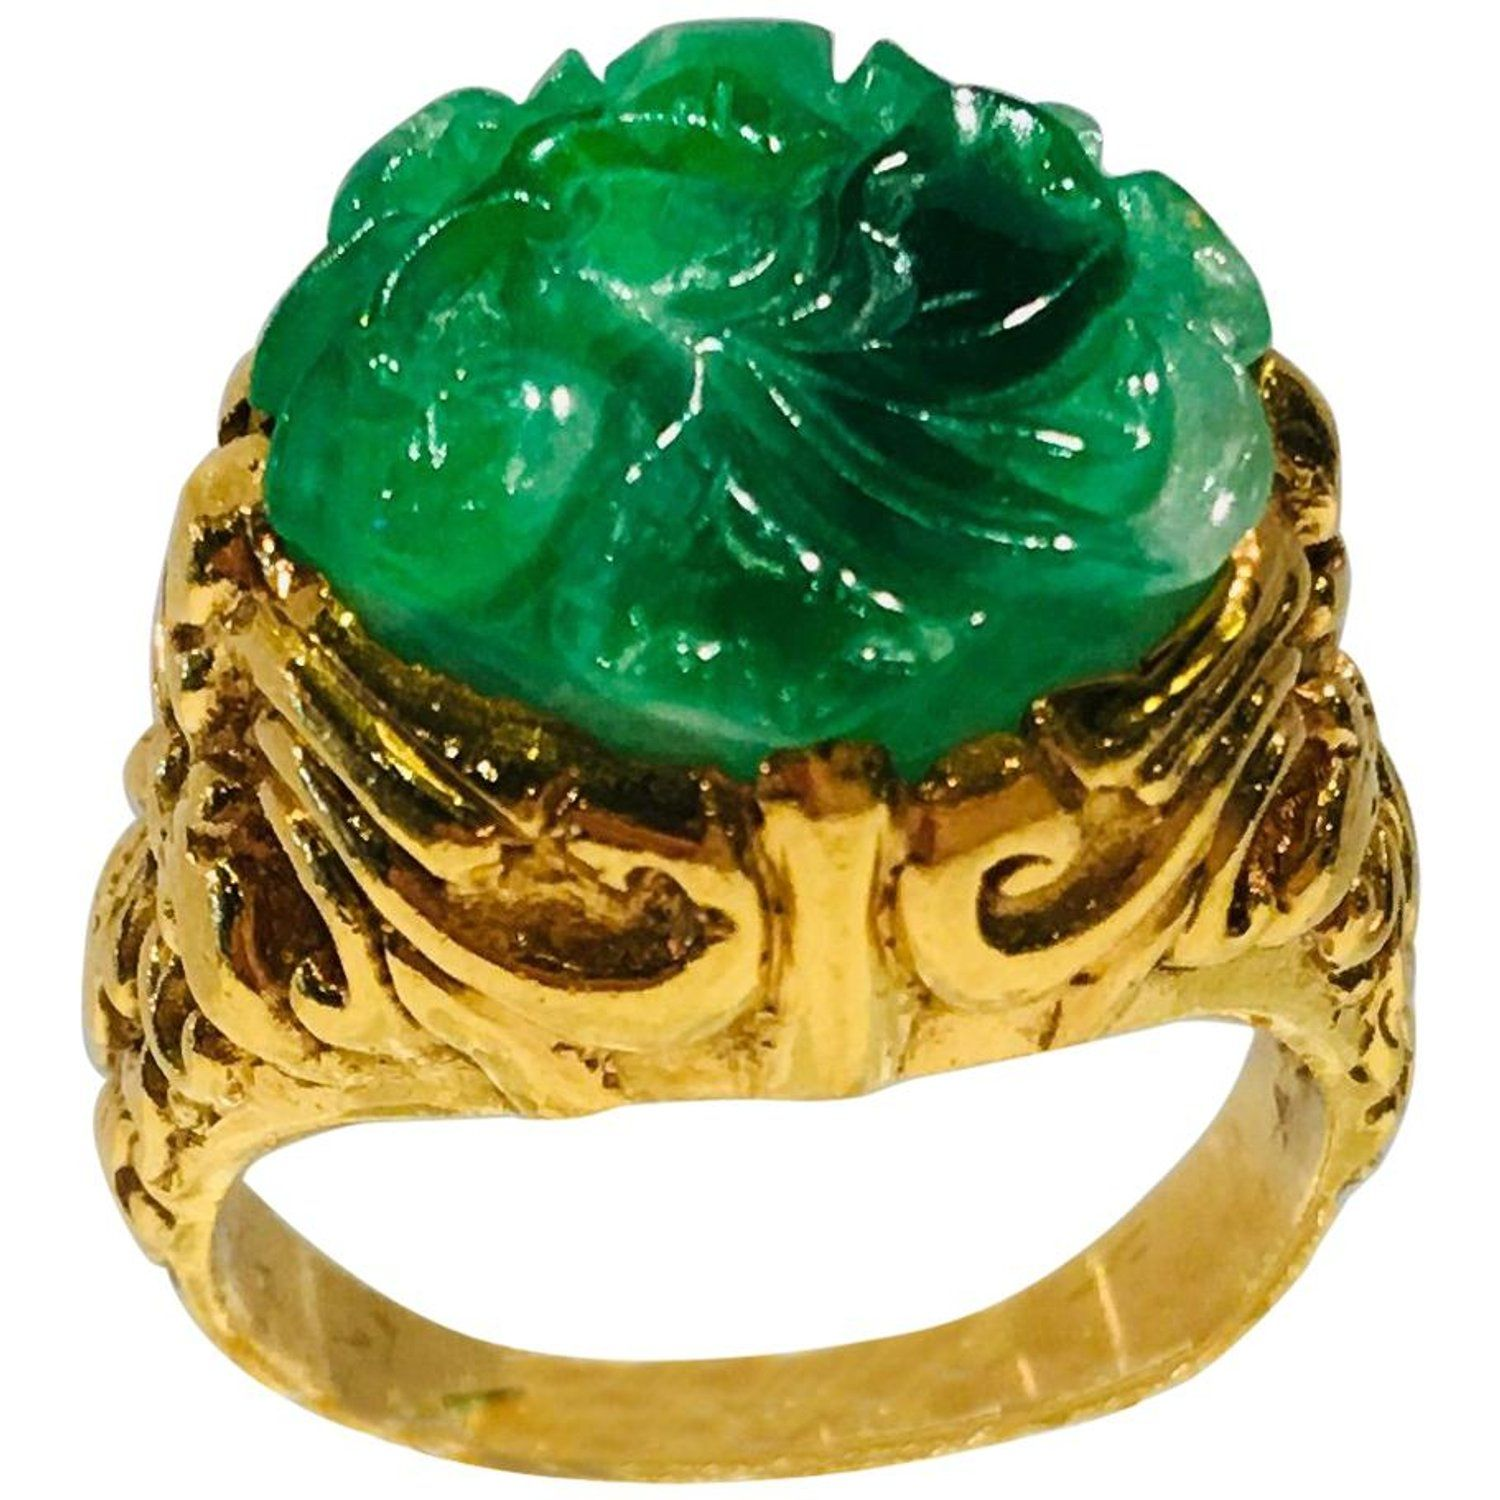 Exquisite Art Deco 12 Carat Jade Carved Flower Apple Green Jade 22 Karat Ring Gold Flower Ring Diamond Rings For Sale Green Diamond Rings